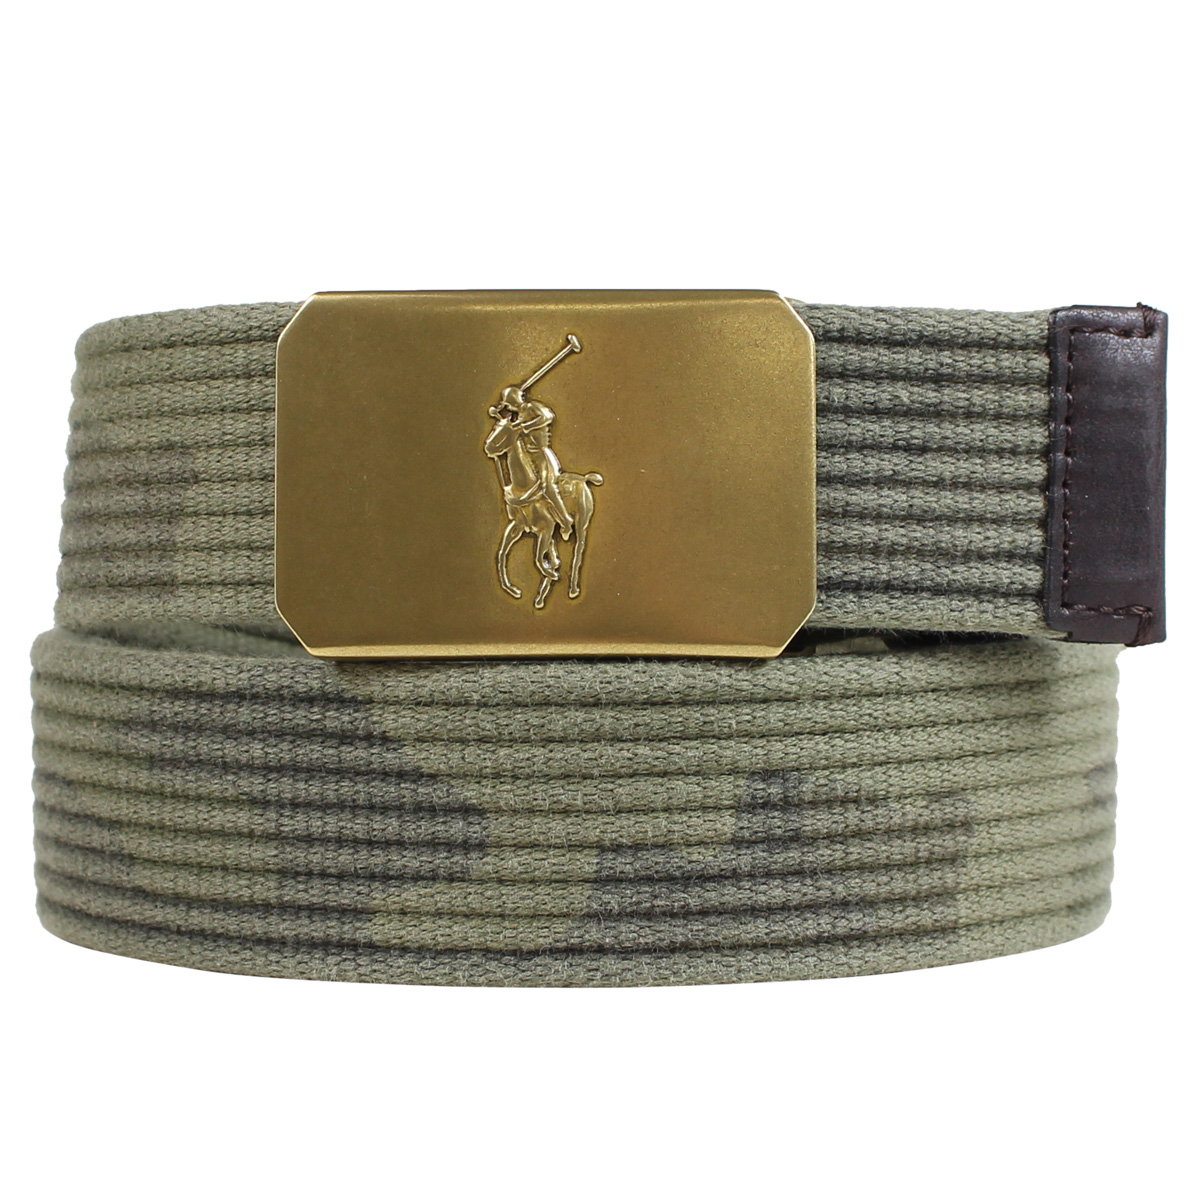 f53343ebcc POLO RALPH LAUREN PLAQUE-BUCKLE COTTON BELT polo Ralph Lauren belt cotton  belt men navy khaki duck [191]